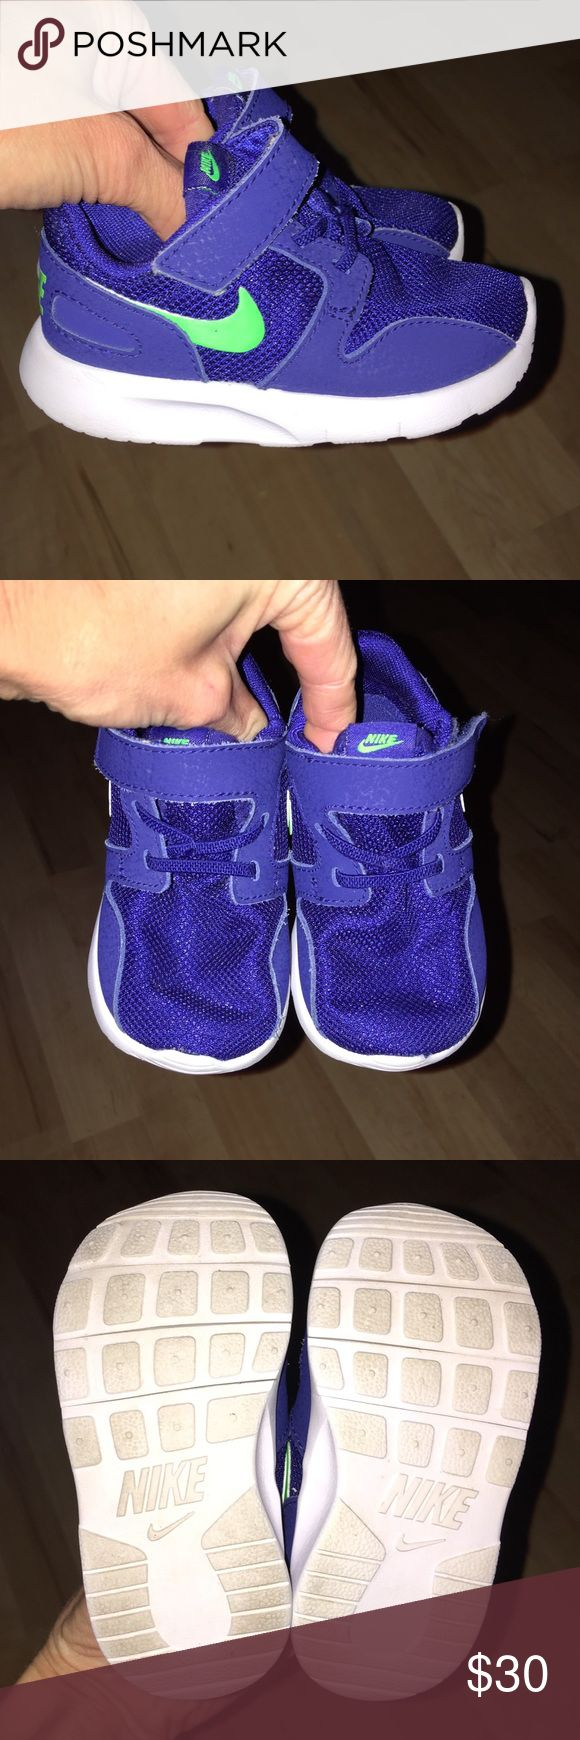 Toddler Nikes sz6 Preowned but in excellent condition. Size 6(toddler) Nike Shoes Sneakers